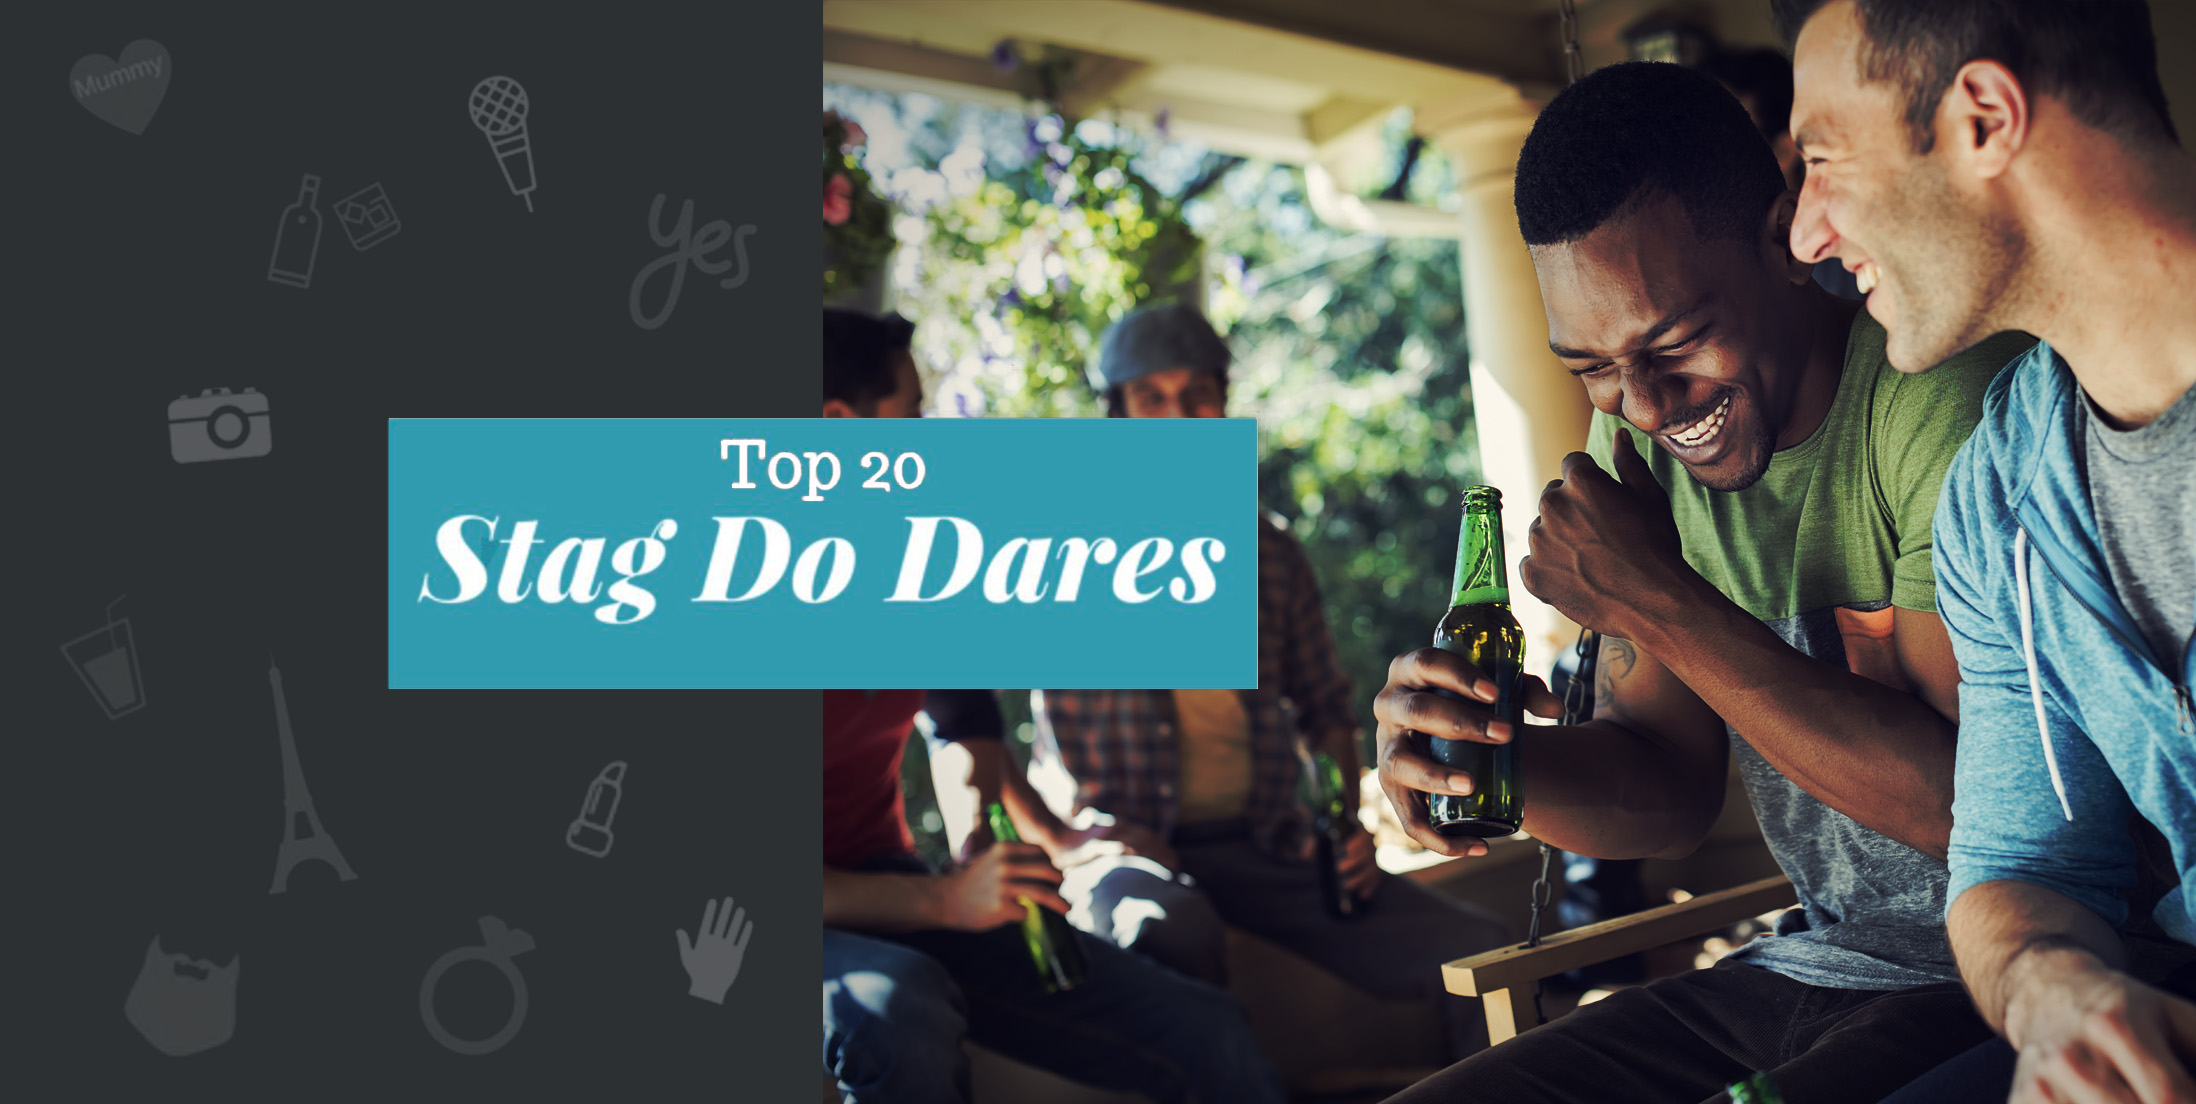 Top 20 Stag Do Dares